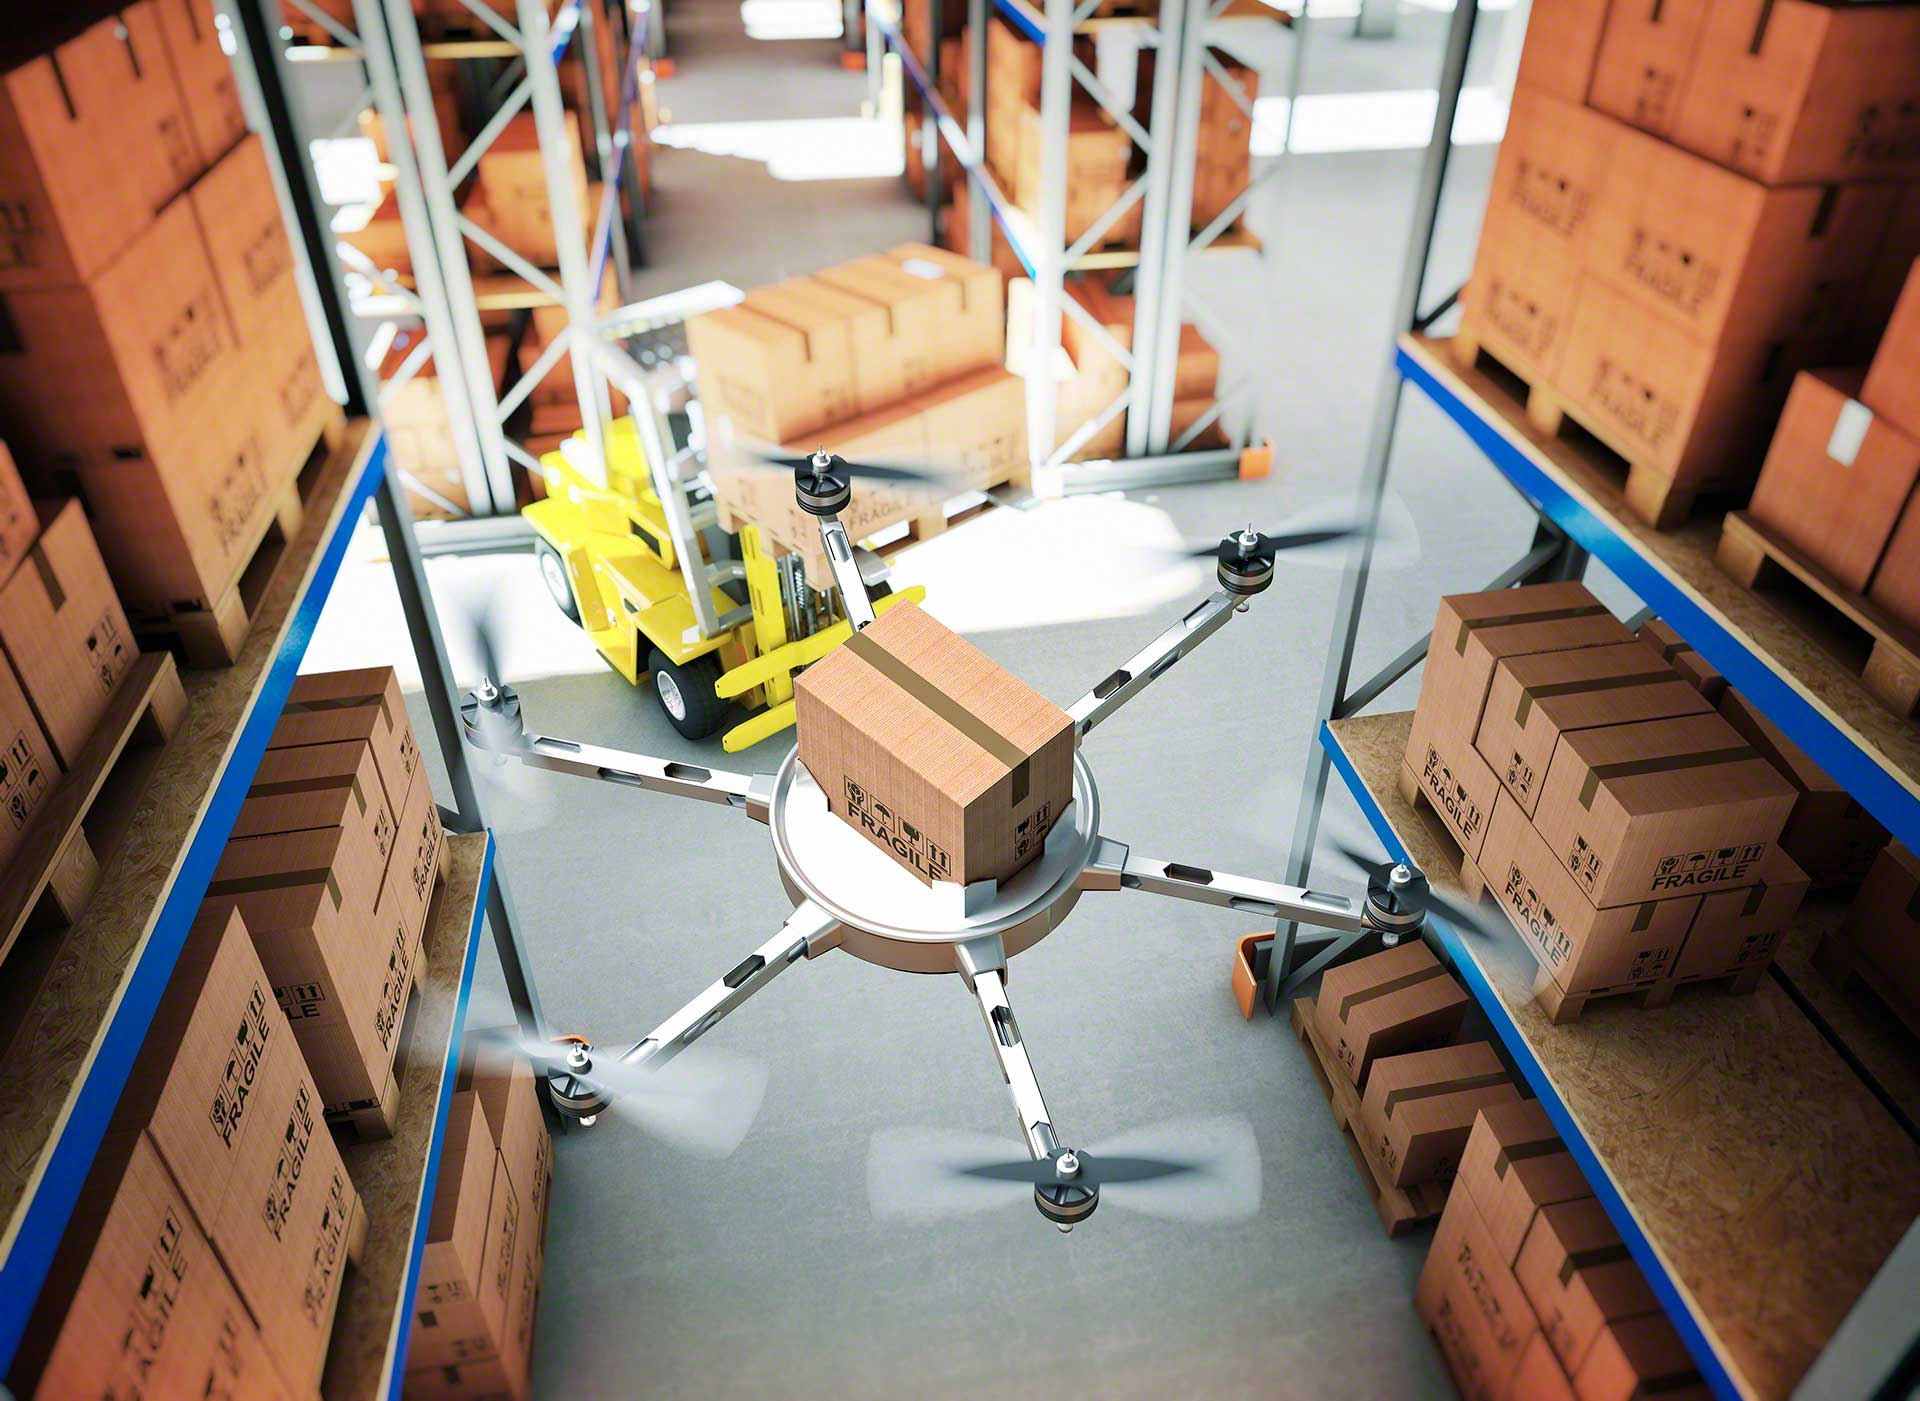 Drones take off in the logistics sector